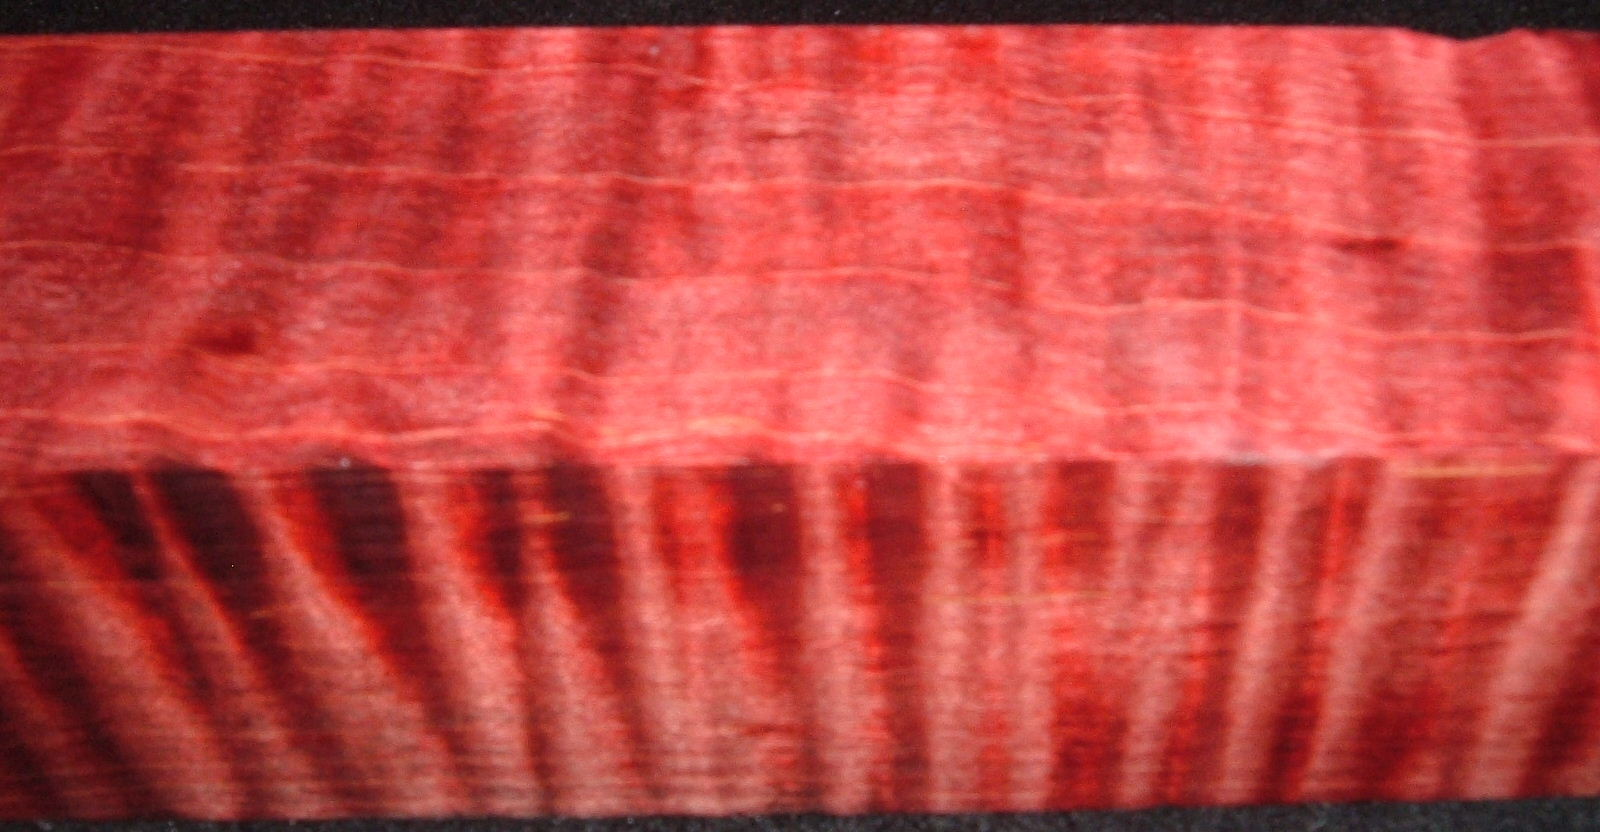 Z309, 1-7/8x1-7/8x6-3/8 ,Red, Curly Tiger Maple Dyed Stabilized, wood turning block